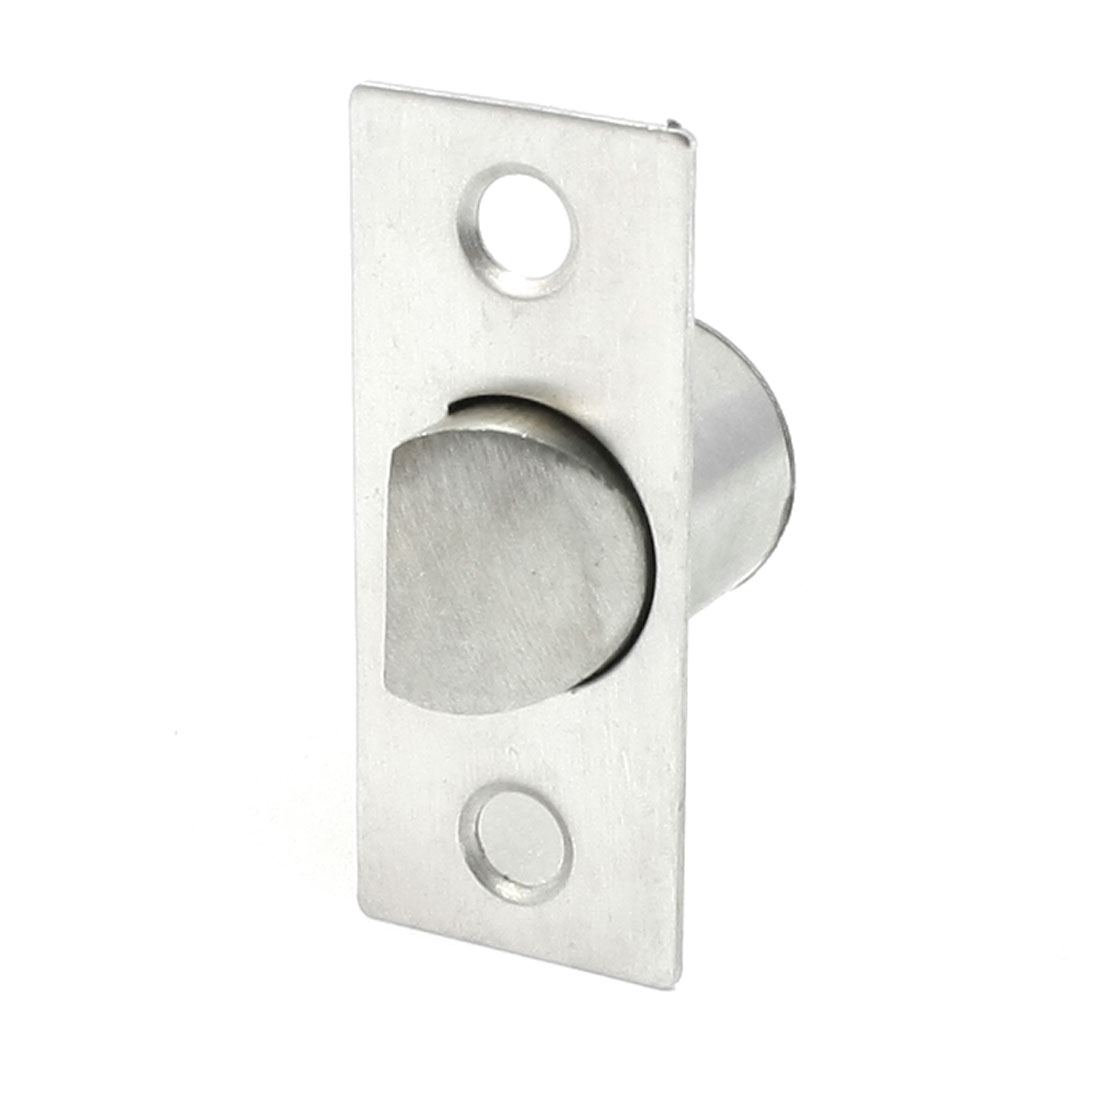 Cabinet 21mm Male Thread Metal Panel Cam Lock Silver Tone